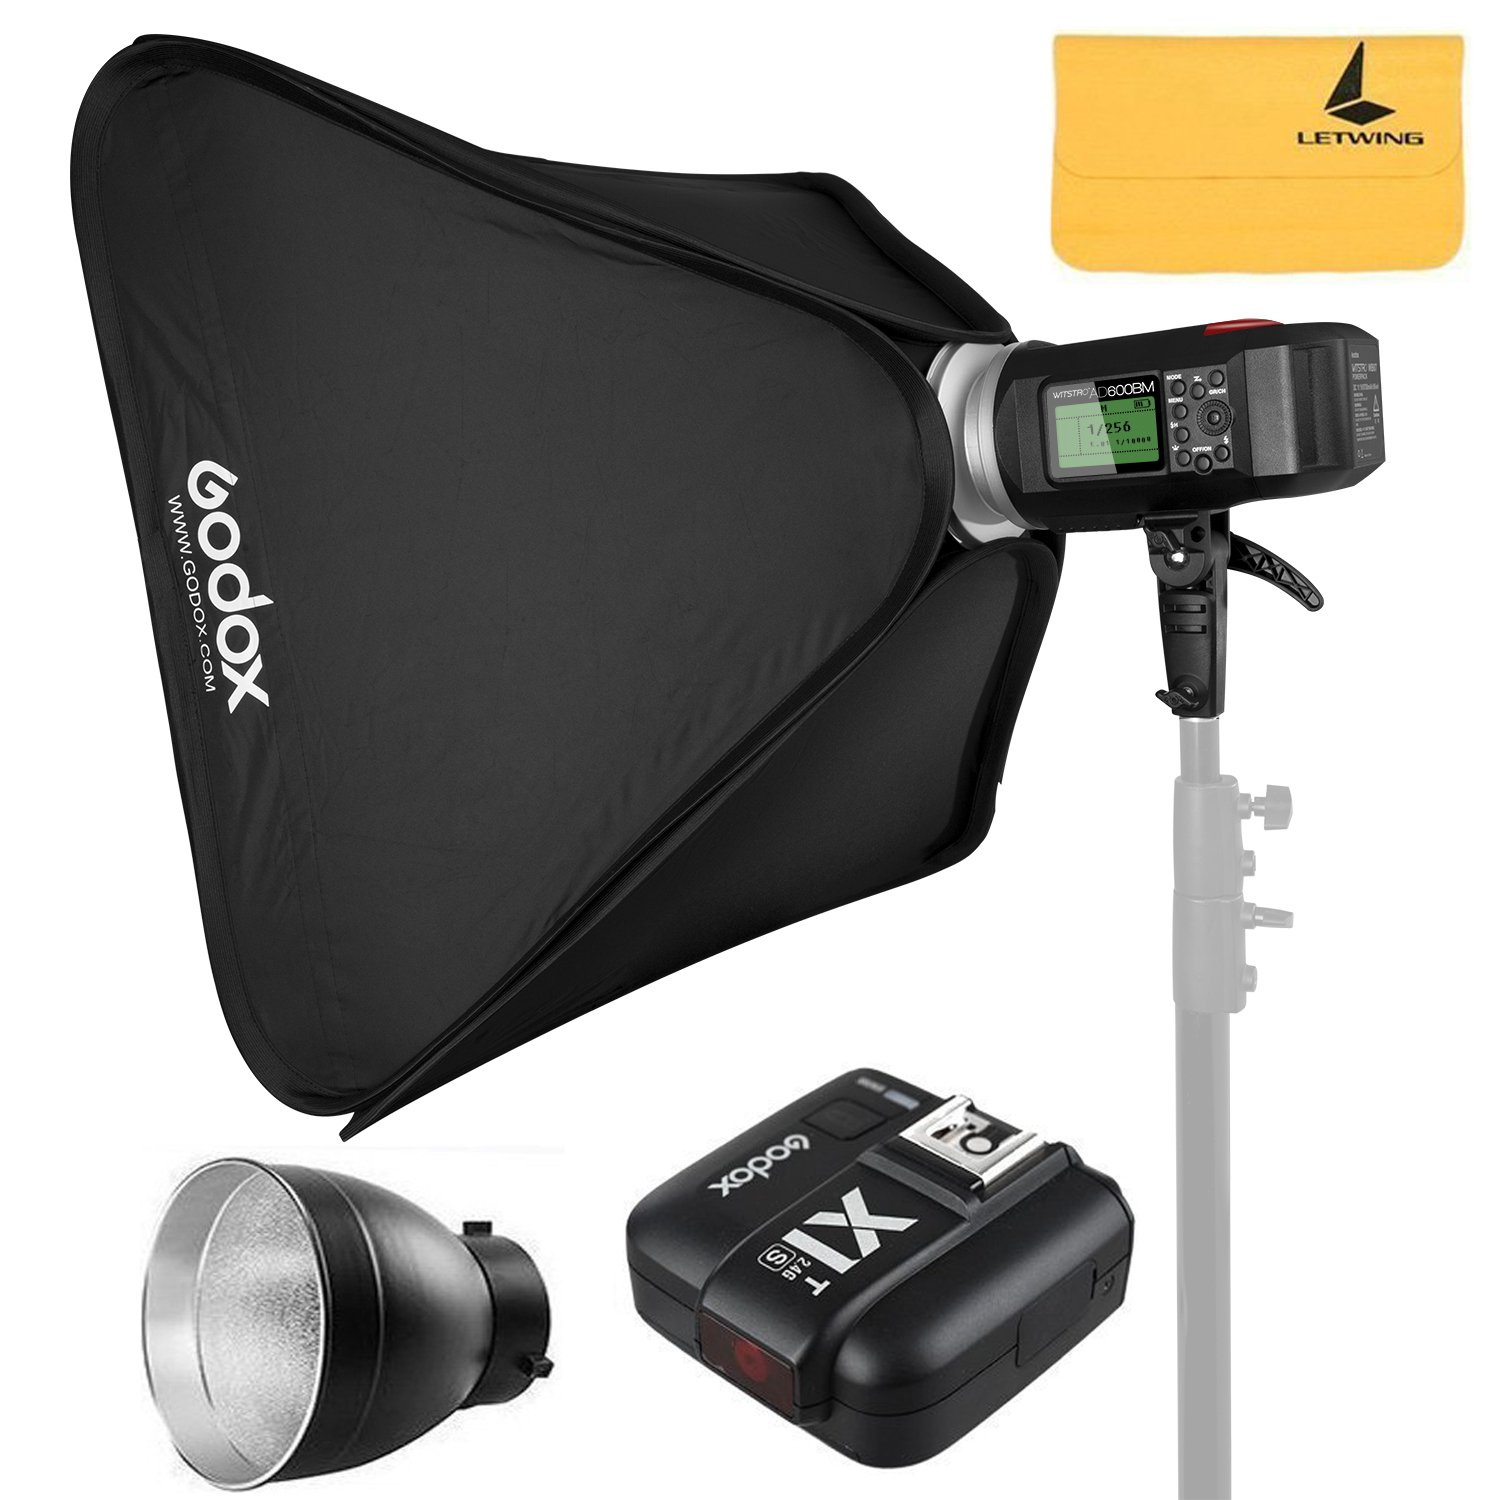 GODOX AD600BM AD Sync 1 / 8000s 2.4G Wireless Flash Light Speedlite+GODOX X1T-S Compatible Sony DSLR Cameras,AD-R6,80cmX80cm /32''X32''Softbox by Godox